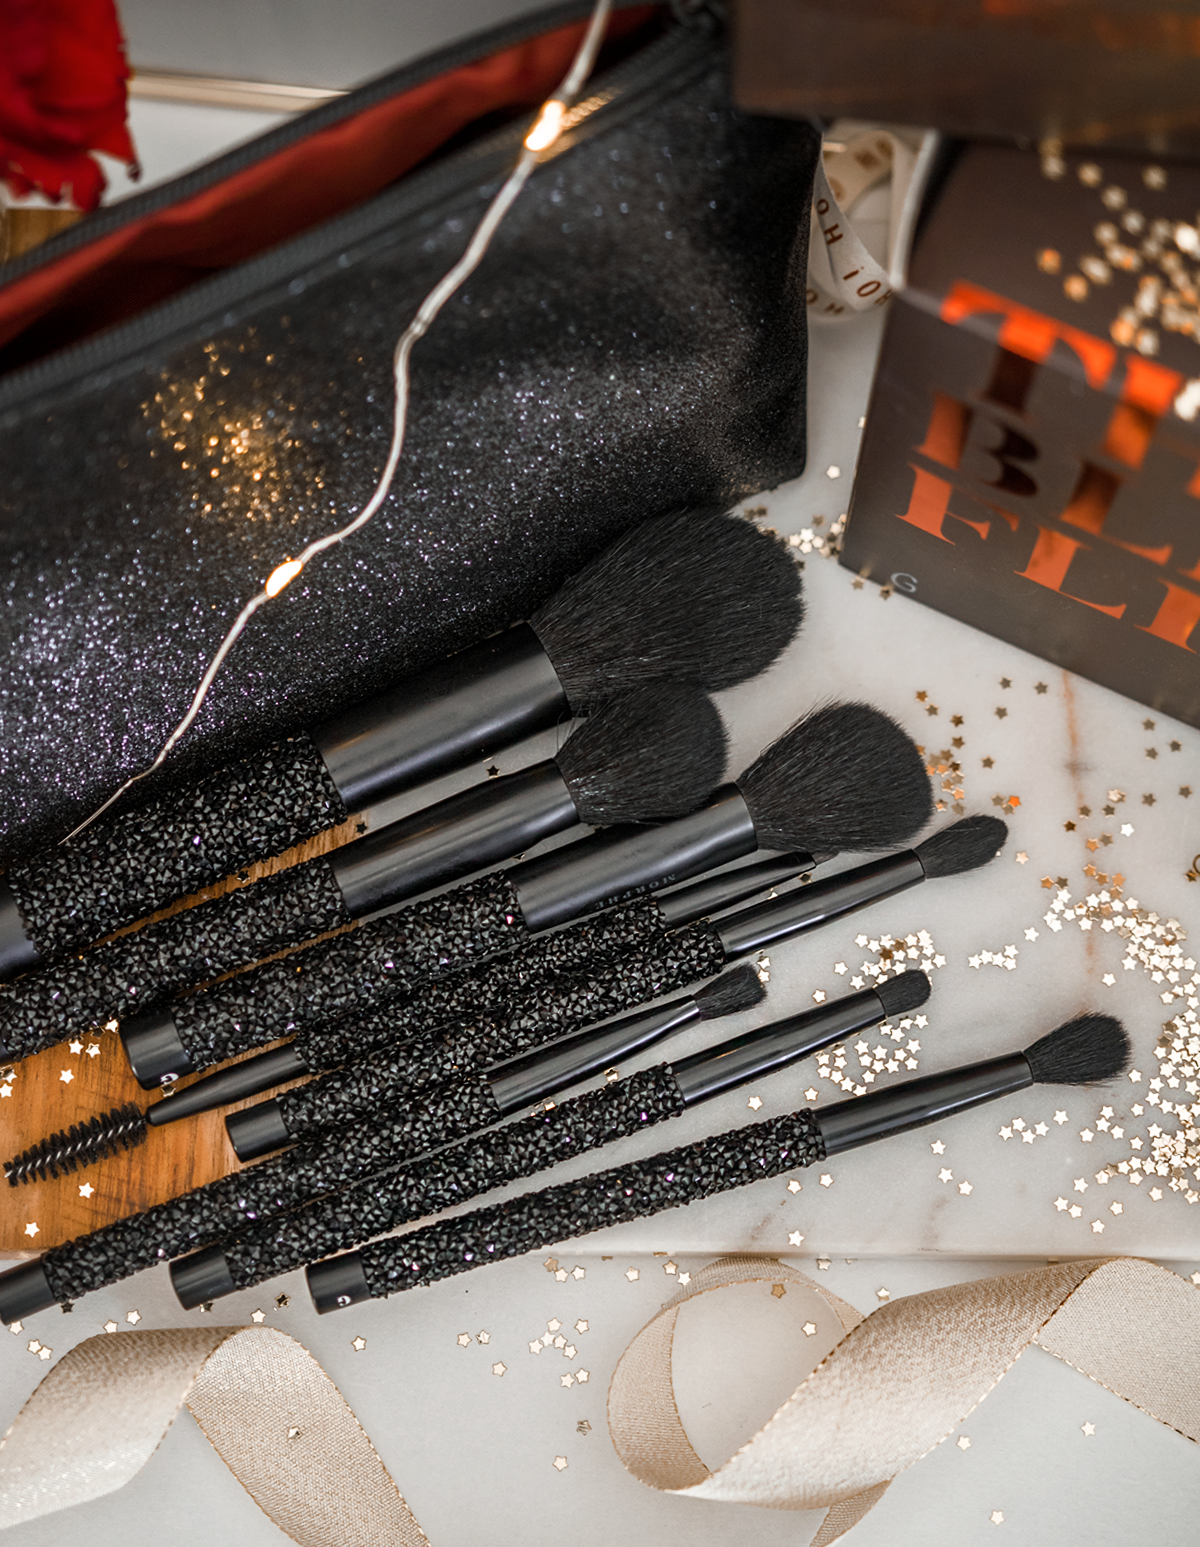 Morphe Christmas Gifts With Cult Beauty